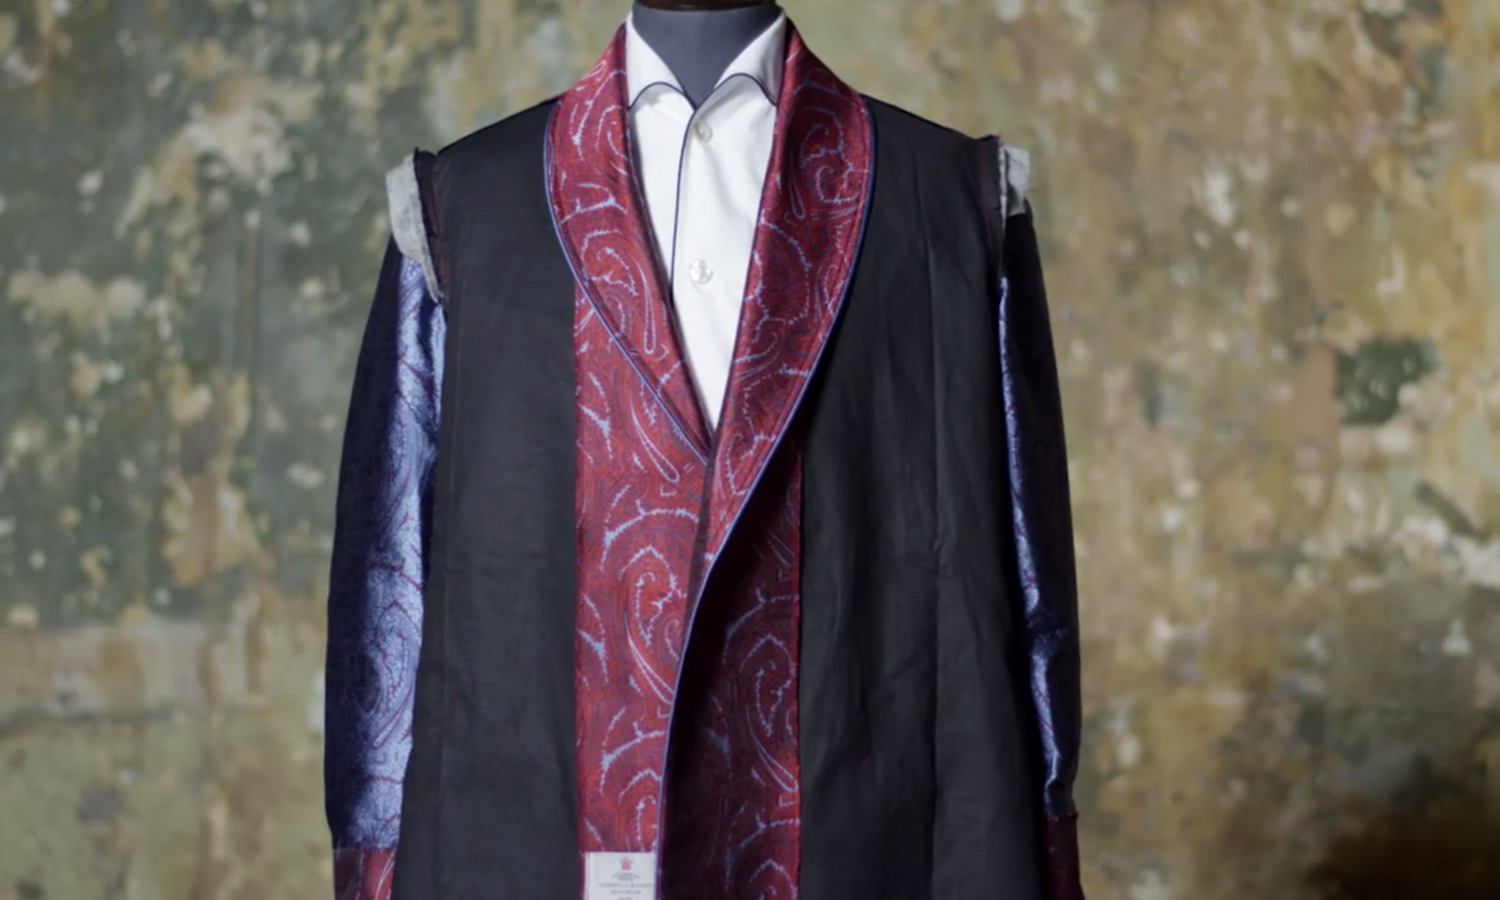 turnbull-asser-gown-video-feat